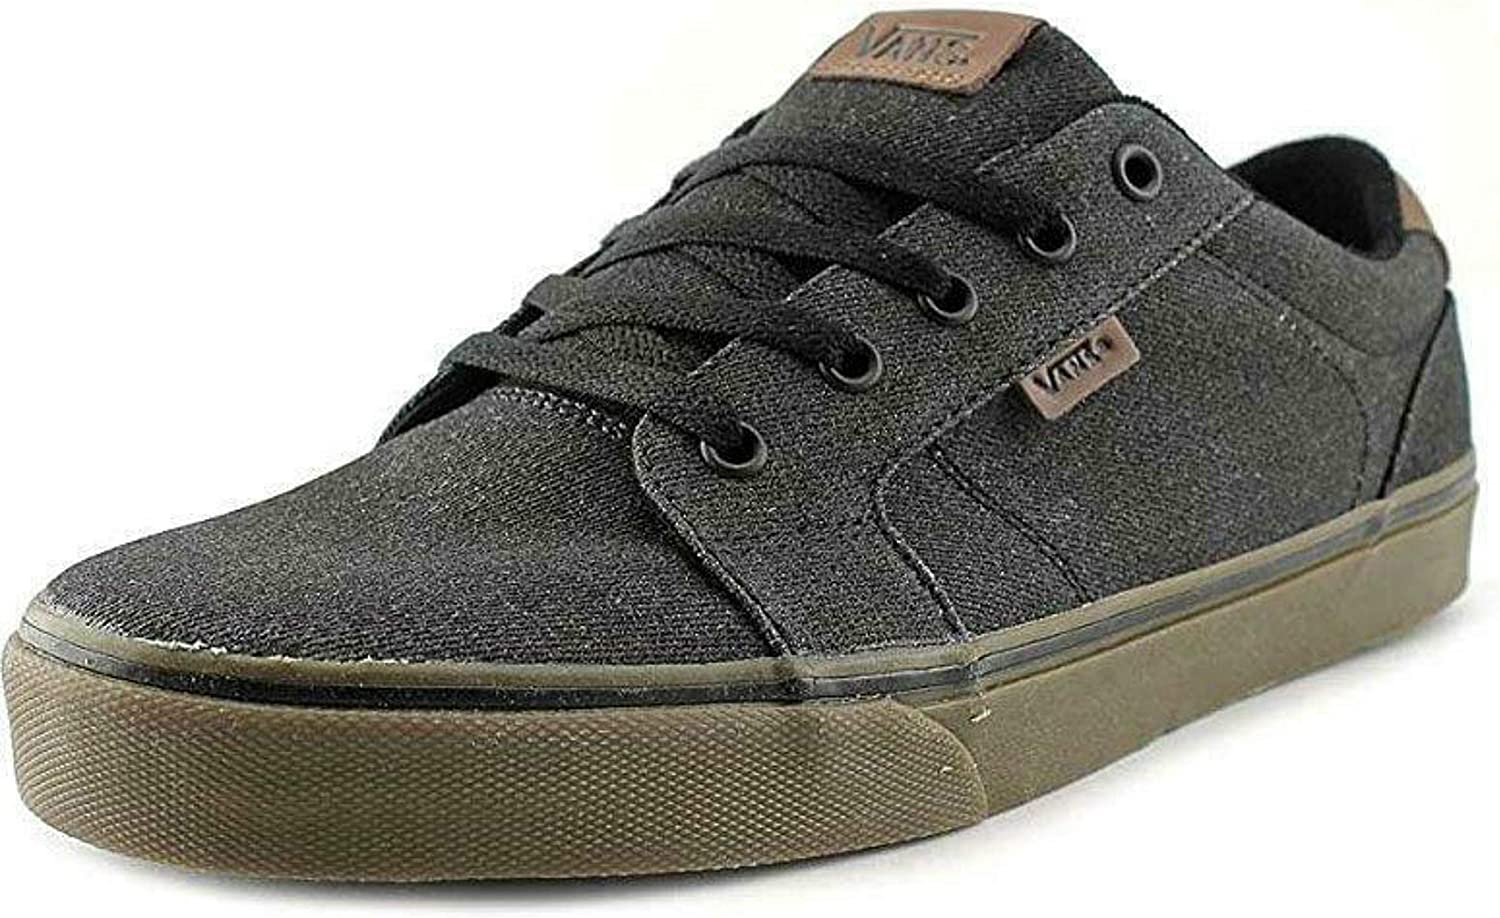 Vans Men's Low-top Trainers Limited price sale Miami Mall